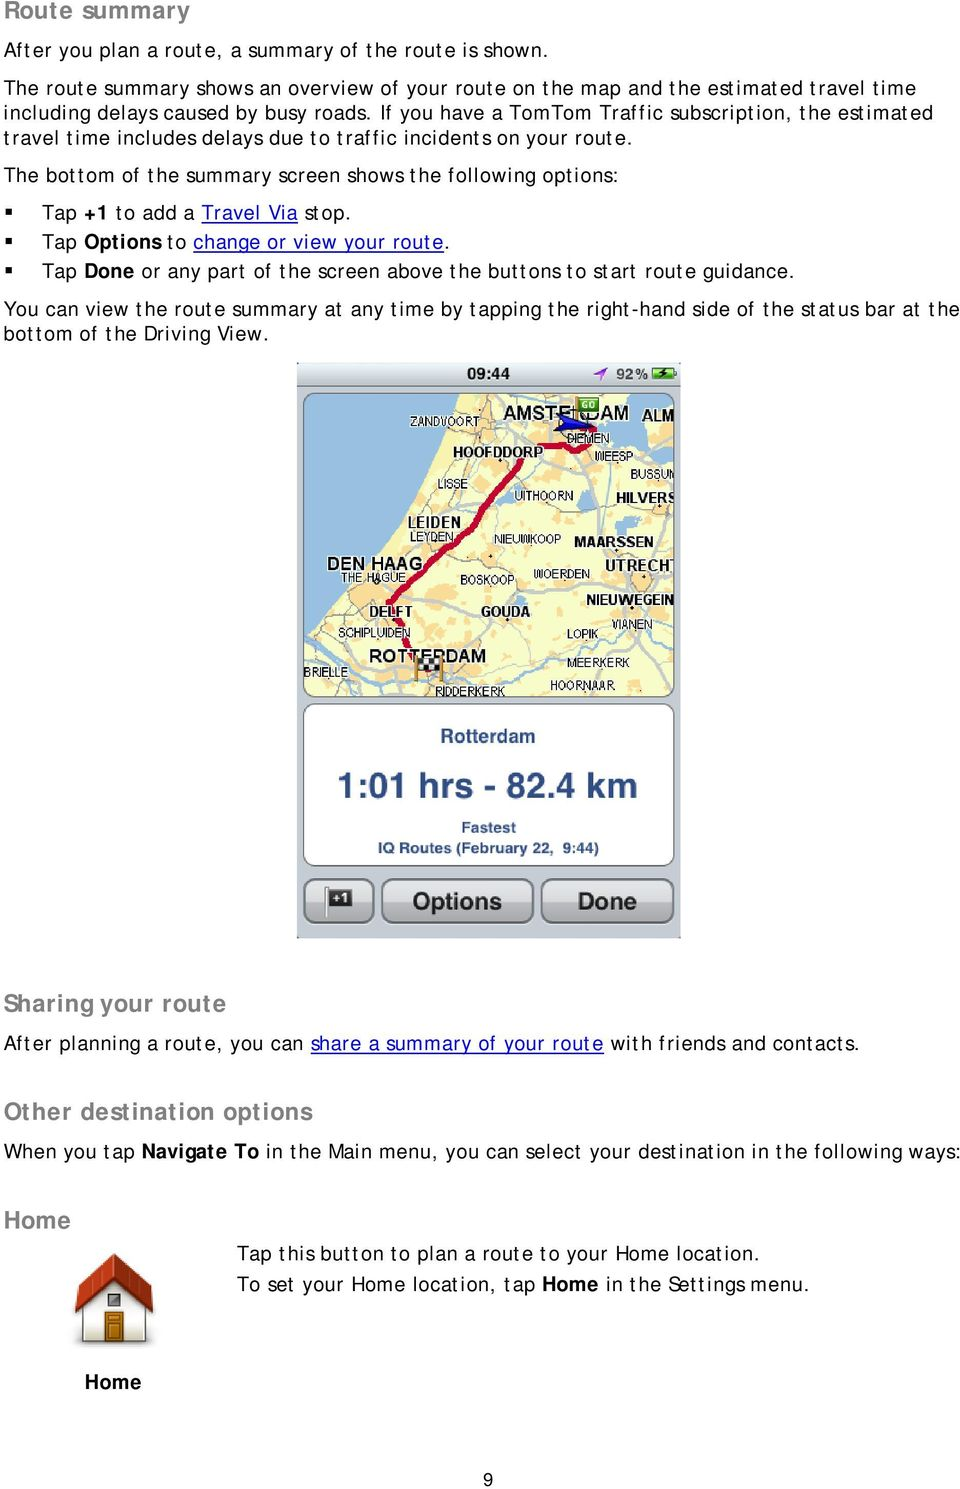 The bottom of the summary screen shows the following options: Tap +1 to add a Travel Via stop. Tap Options to change or view your route.